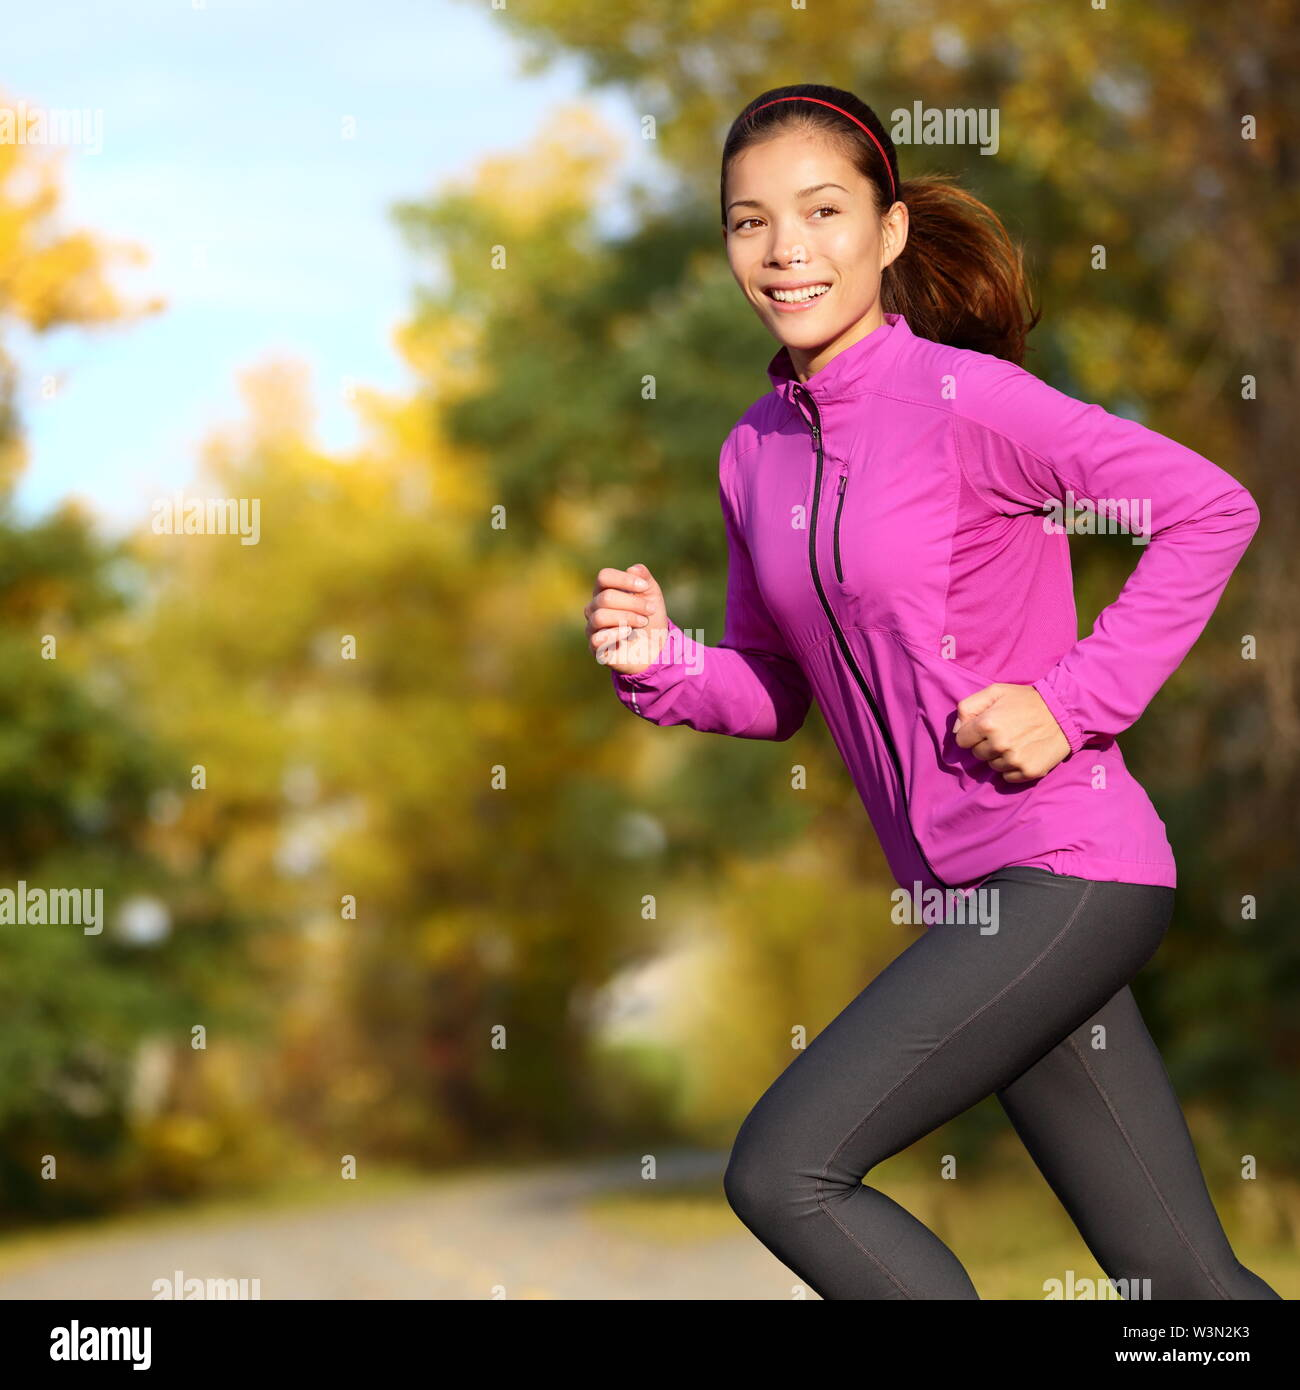 Young Asian woman running female jogger happy. Female runner jogging in park in autumn park forest in fall colors. Beautiful young sport model. Multi-ethnic Asian Chinese / Caucasian girl in her 20s. - Stock Image